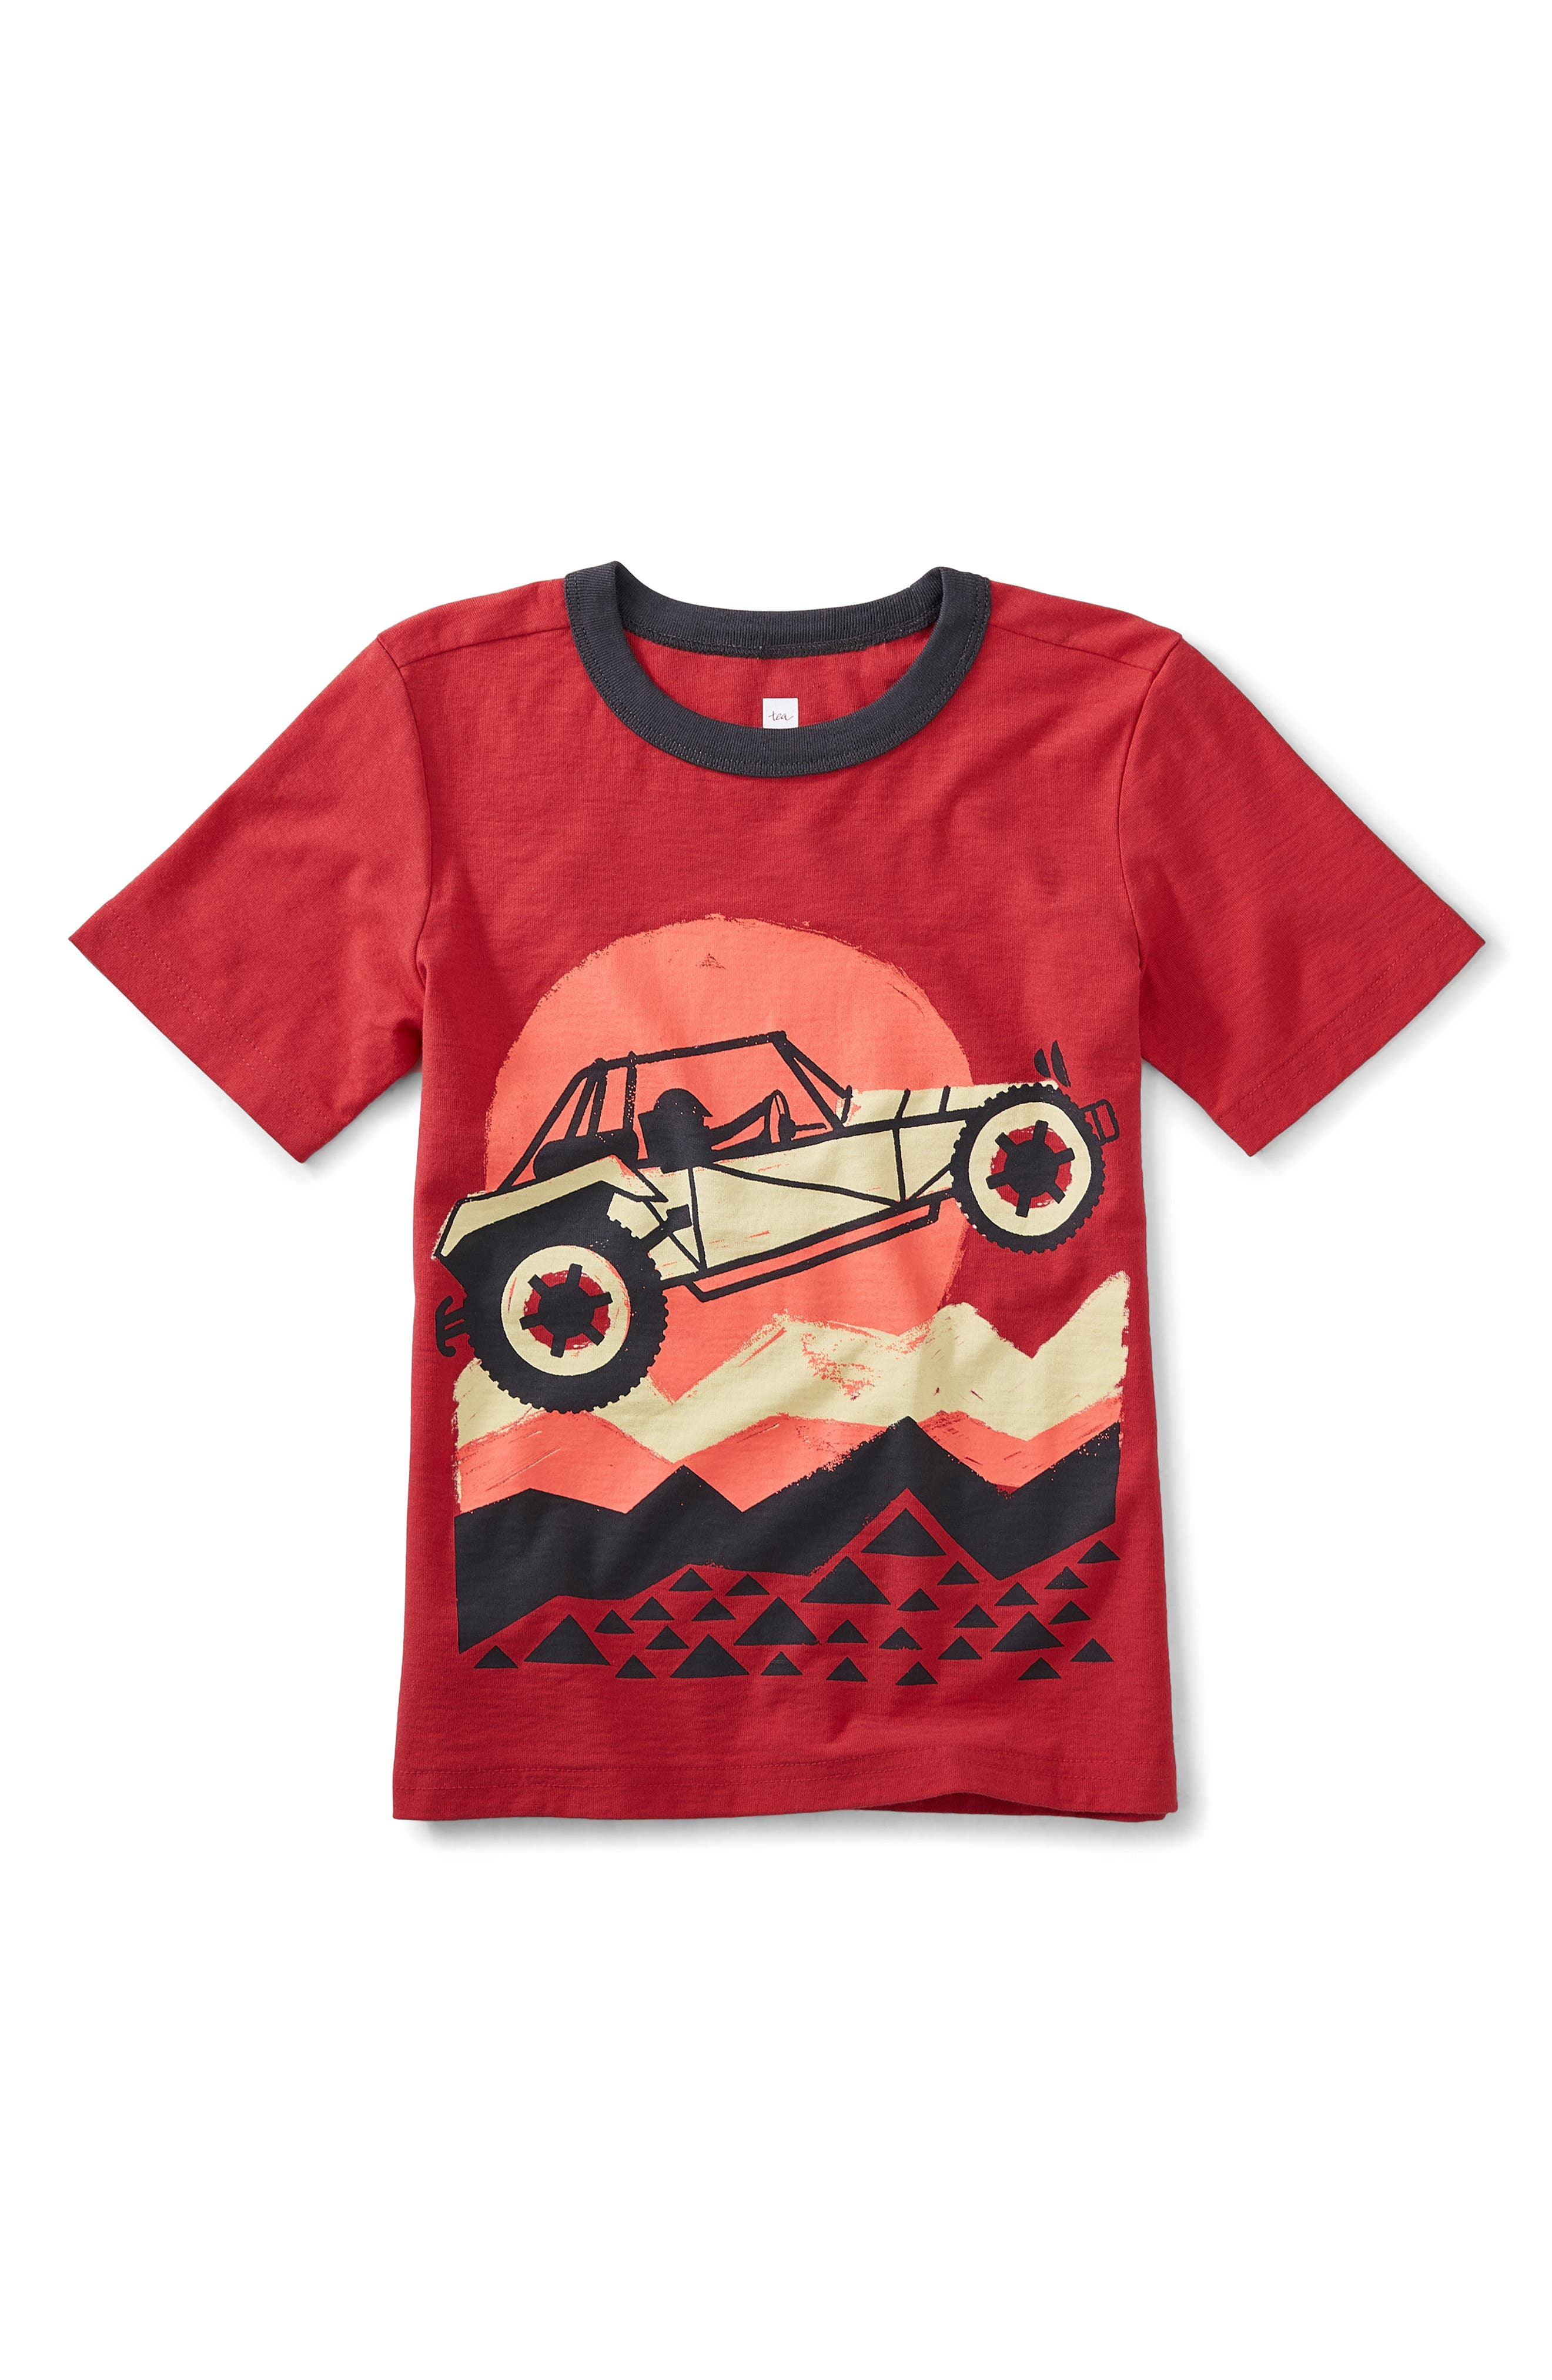 Dune Buggy Graphic T-Shirt,                         Main,                         color, 622